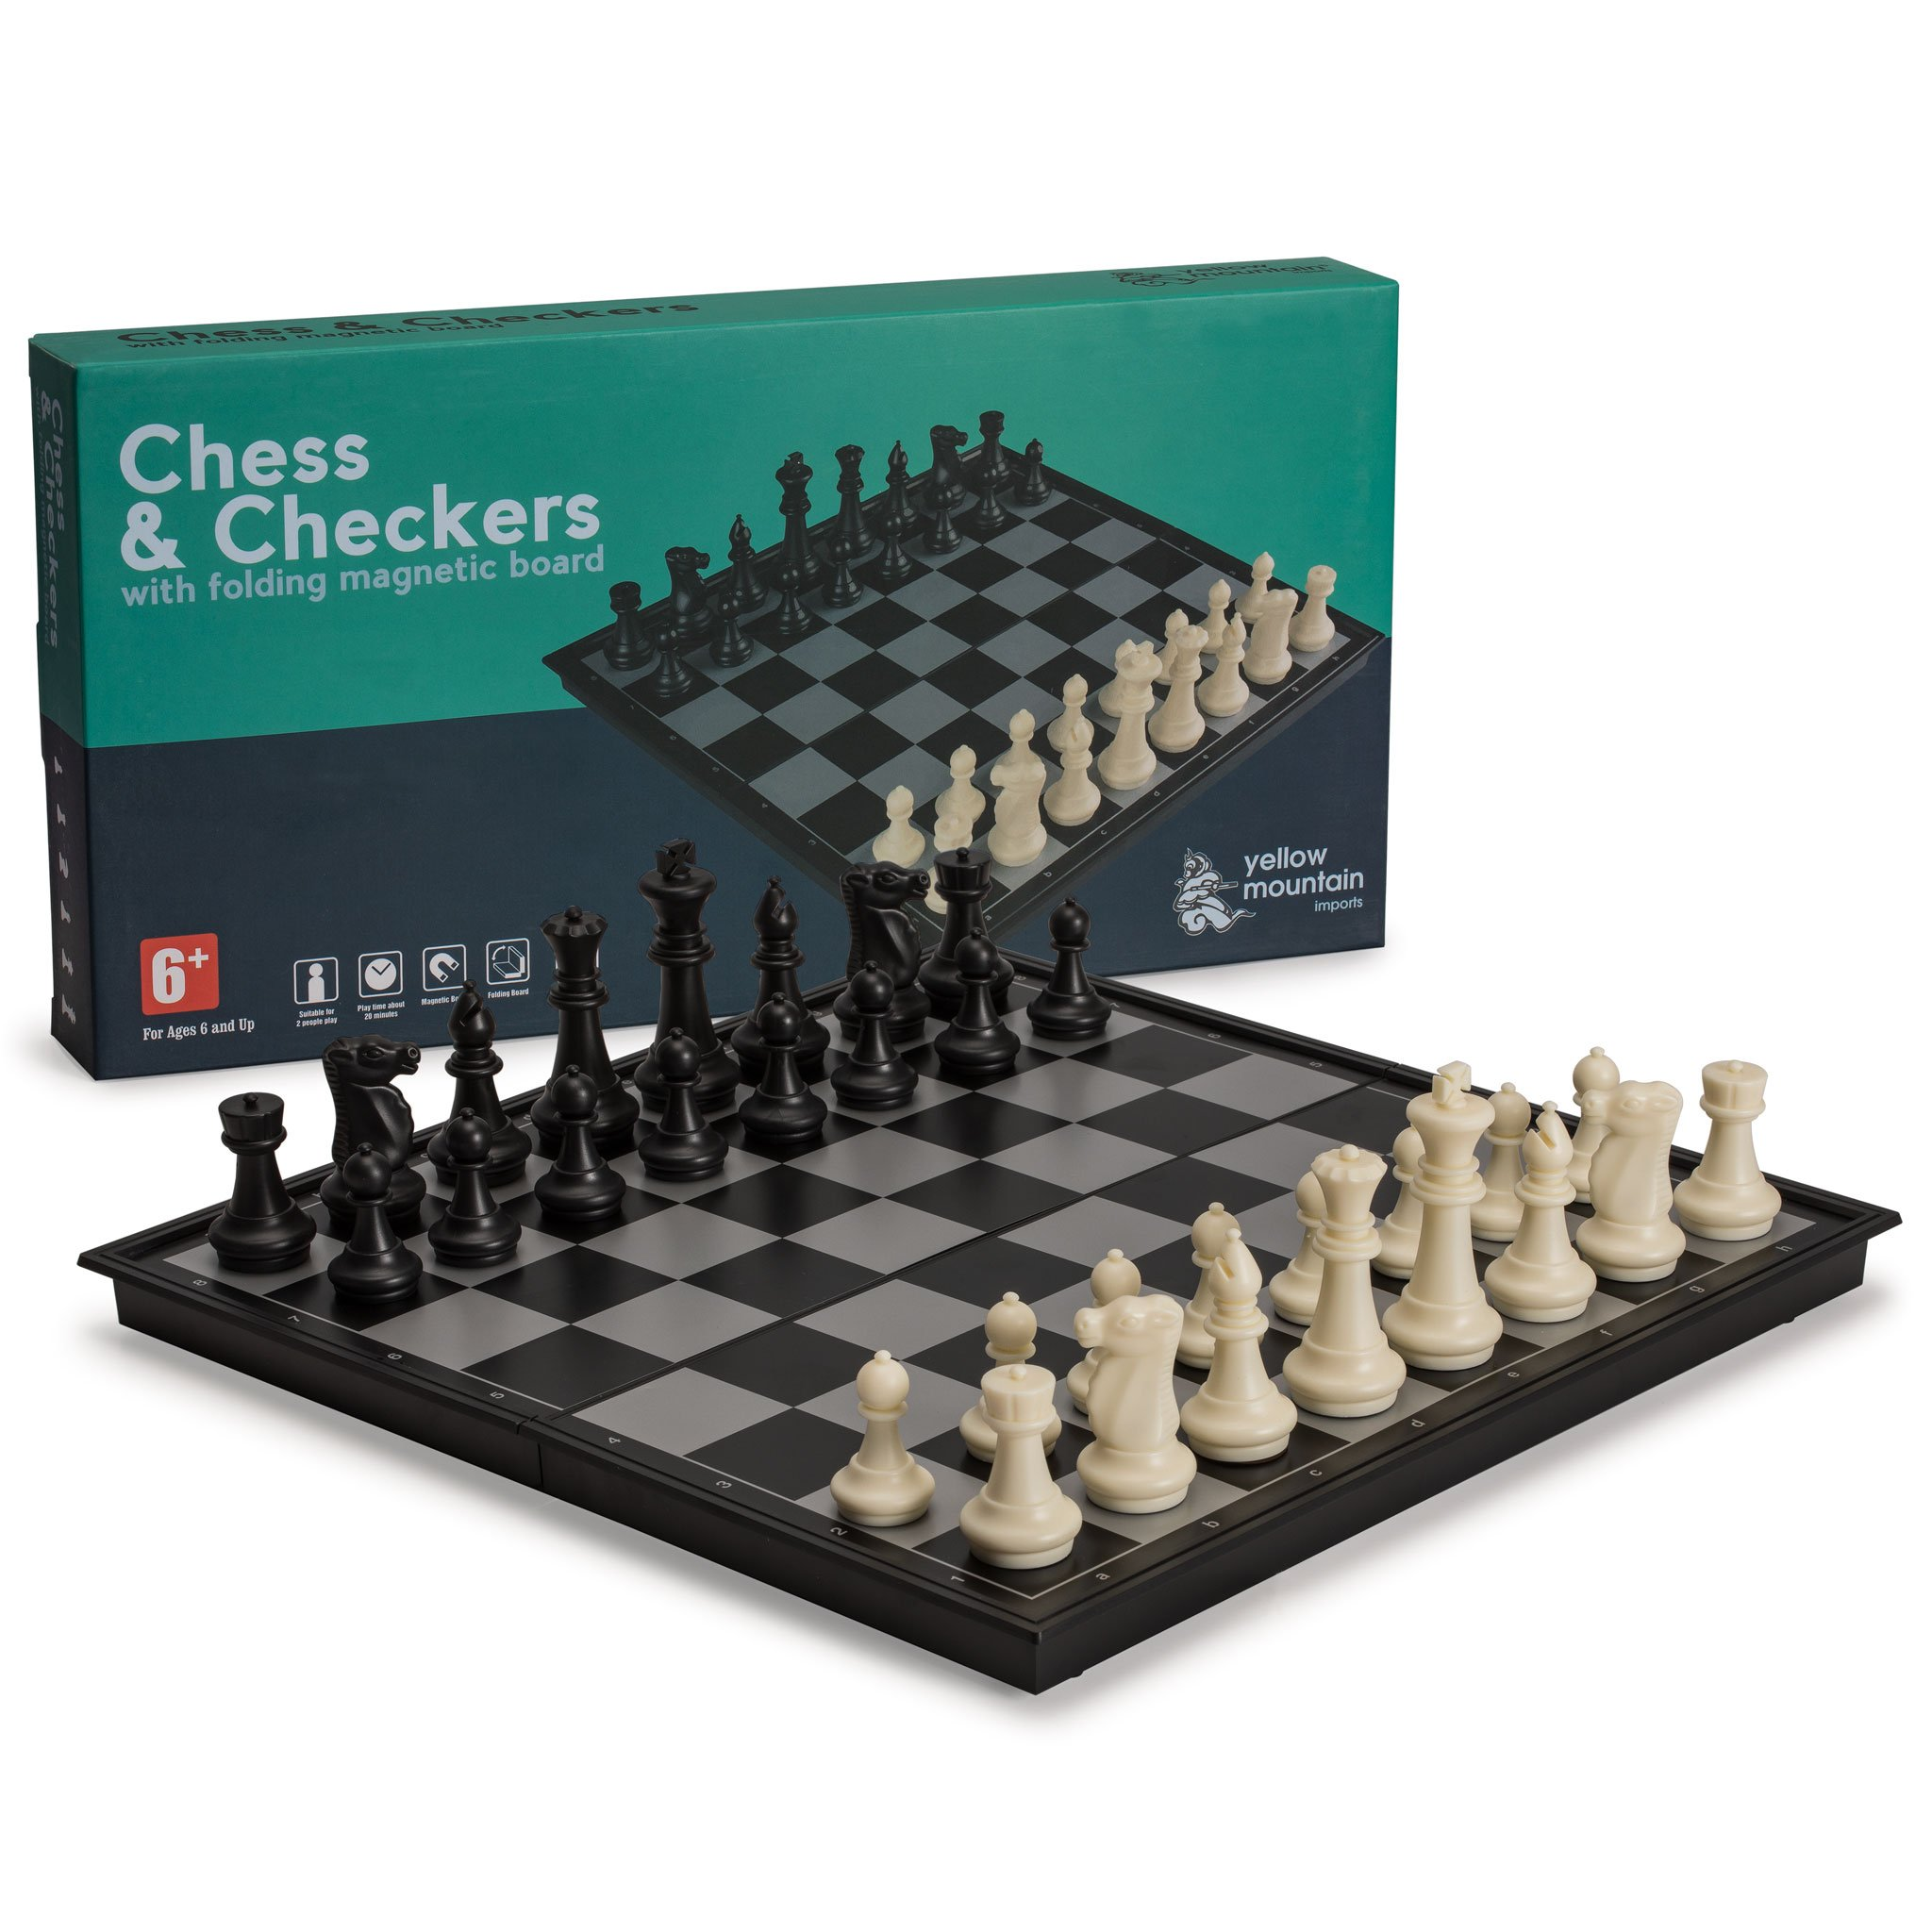 2 in 1 Travel Magnetic Chess and Checkers Game Set, 14 Inches